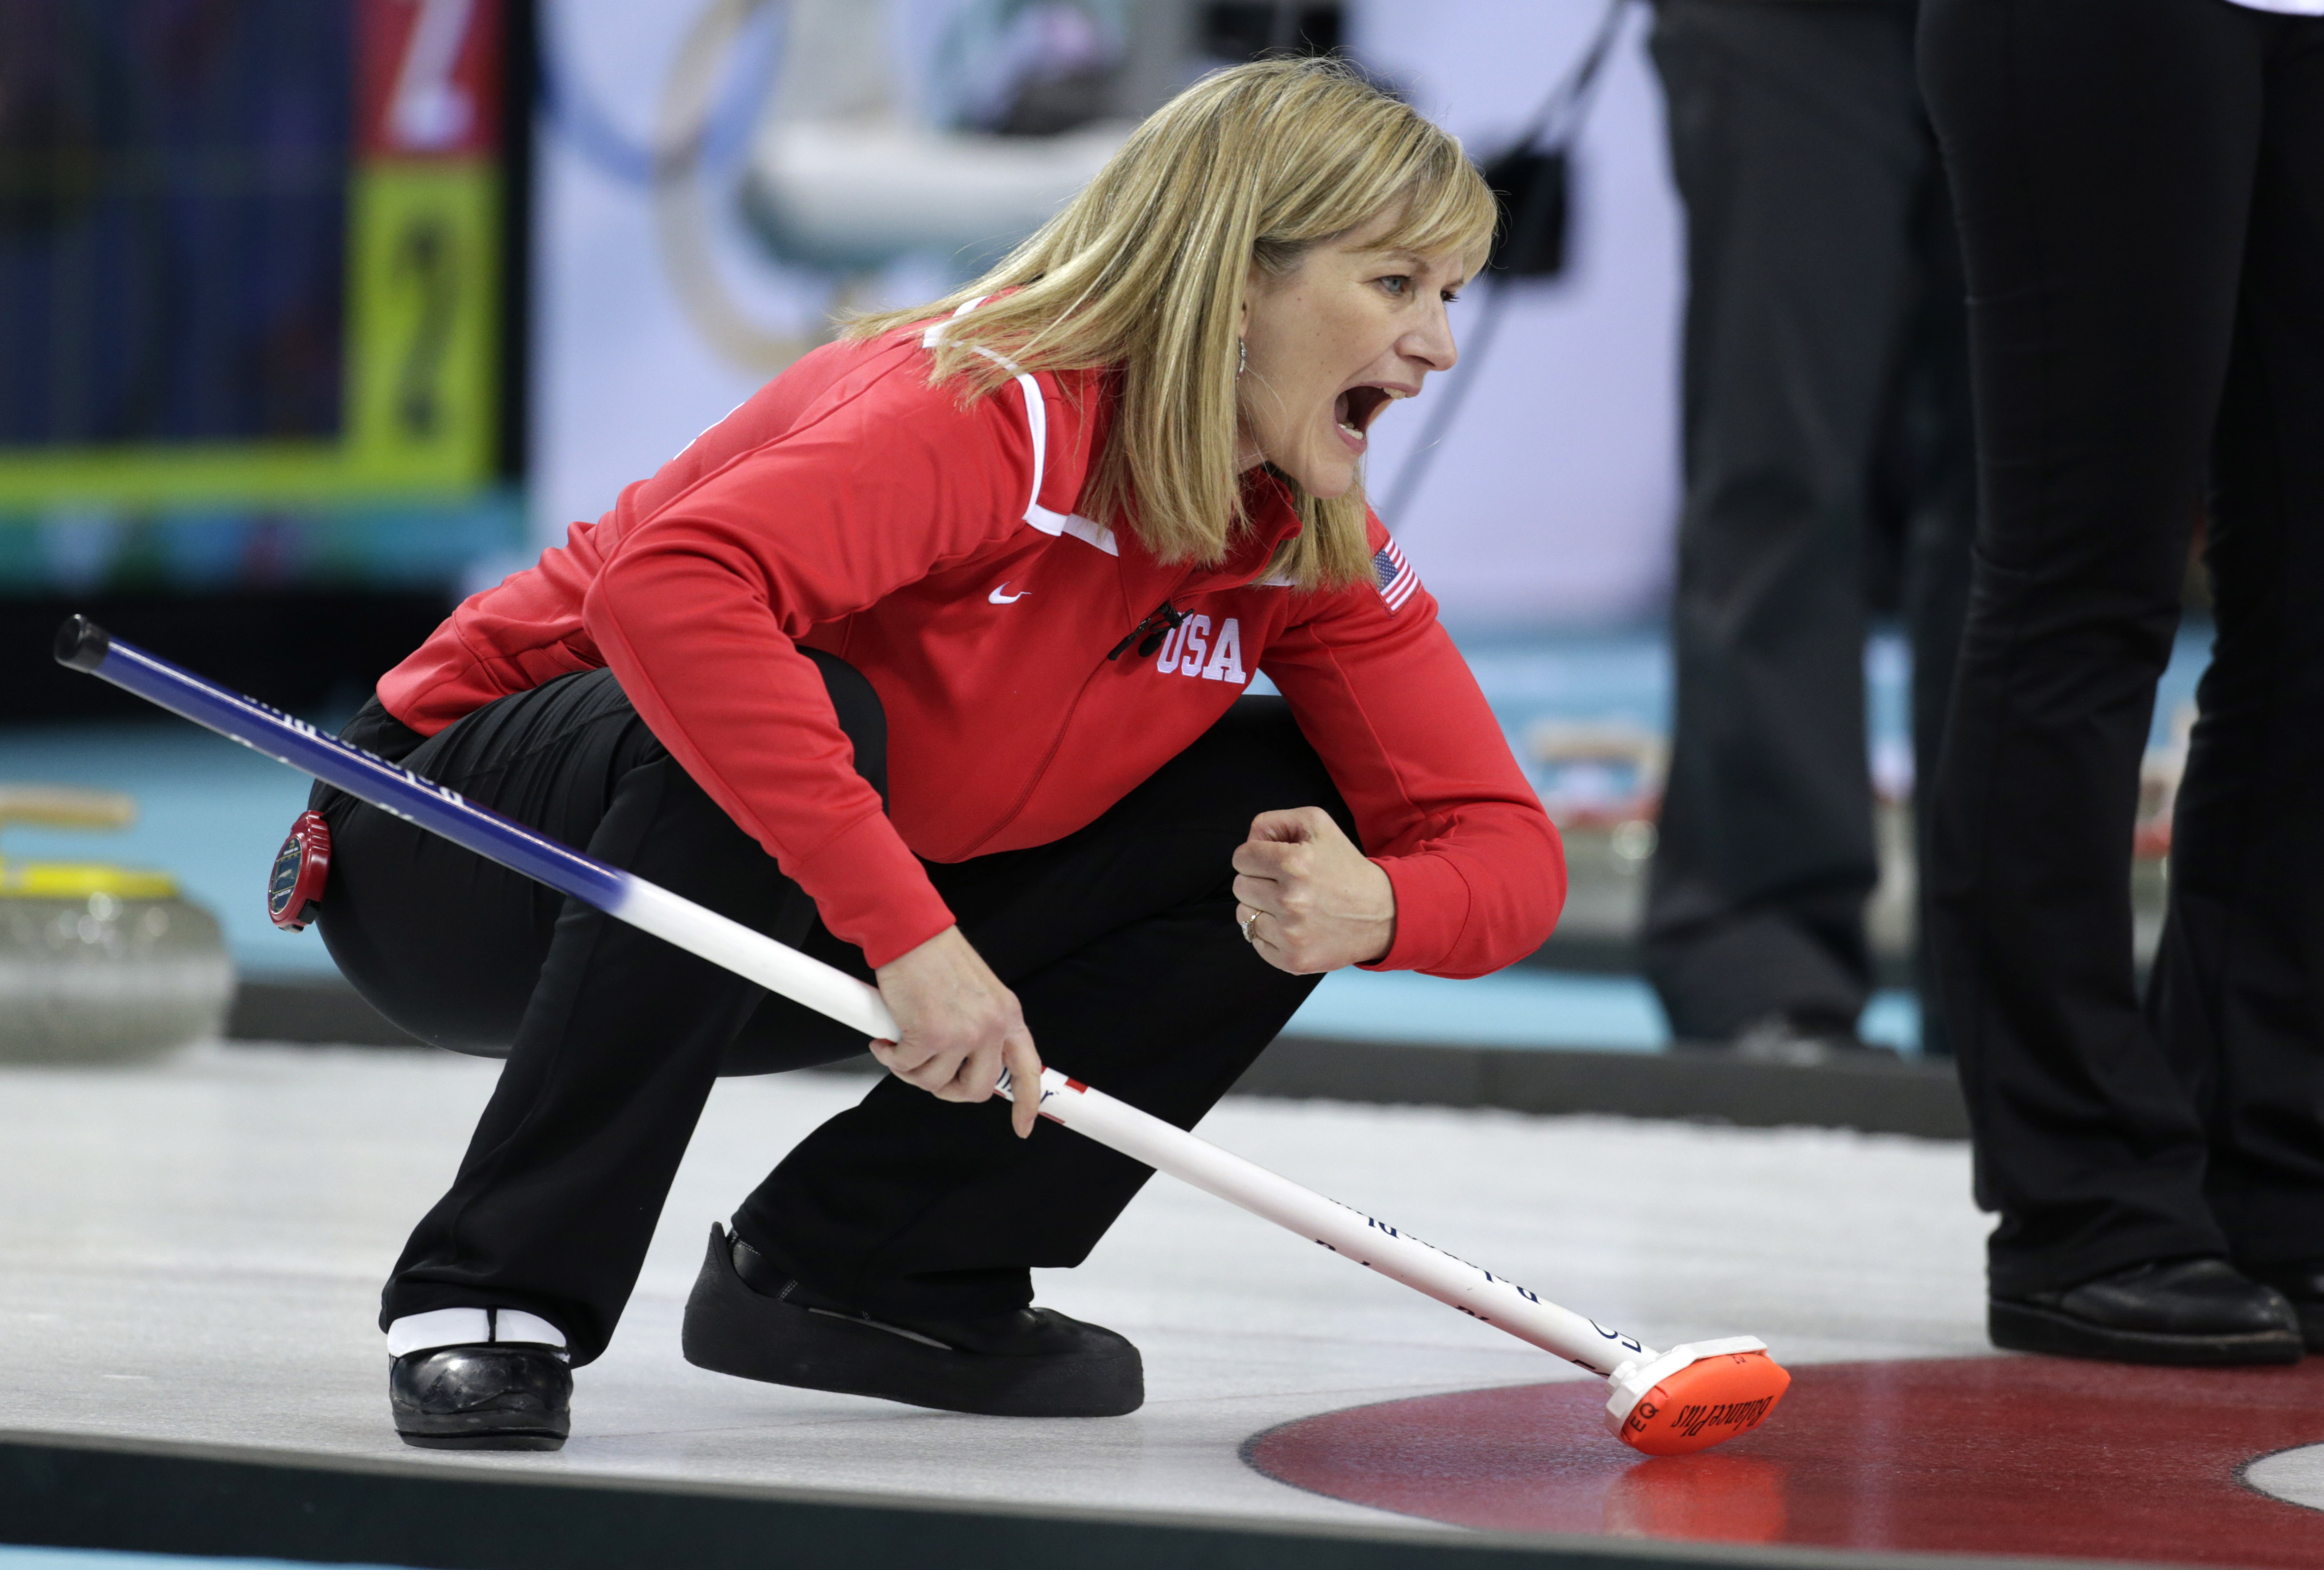 Erika Brown, skip of the United States team, shouts instructions from the house during women's curling competition against Denmark at the 2014 Winter Olympics, Friday, Feb. 14, 2014, in Sochi, Russia. (AP Photo/Robert F. Bukaty)